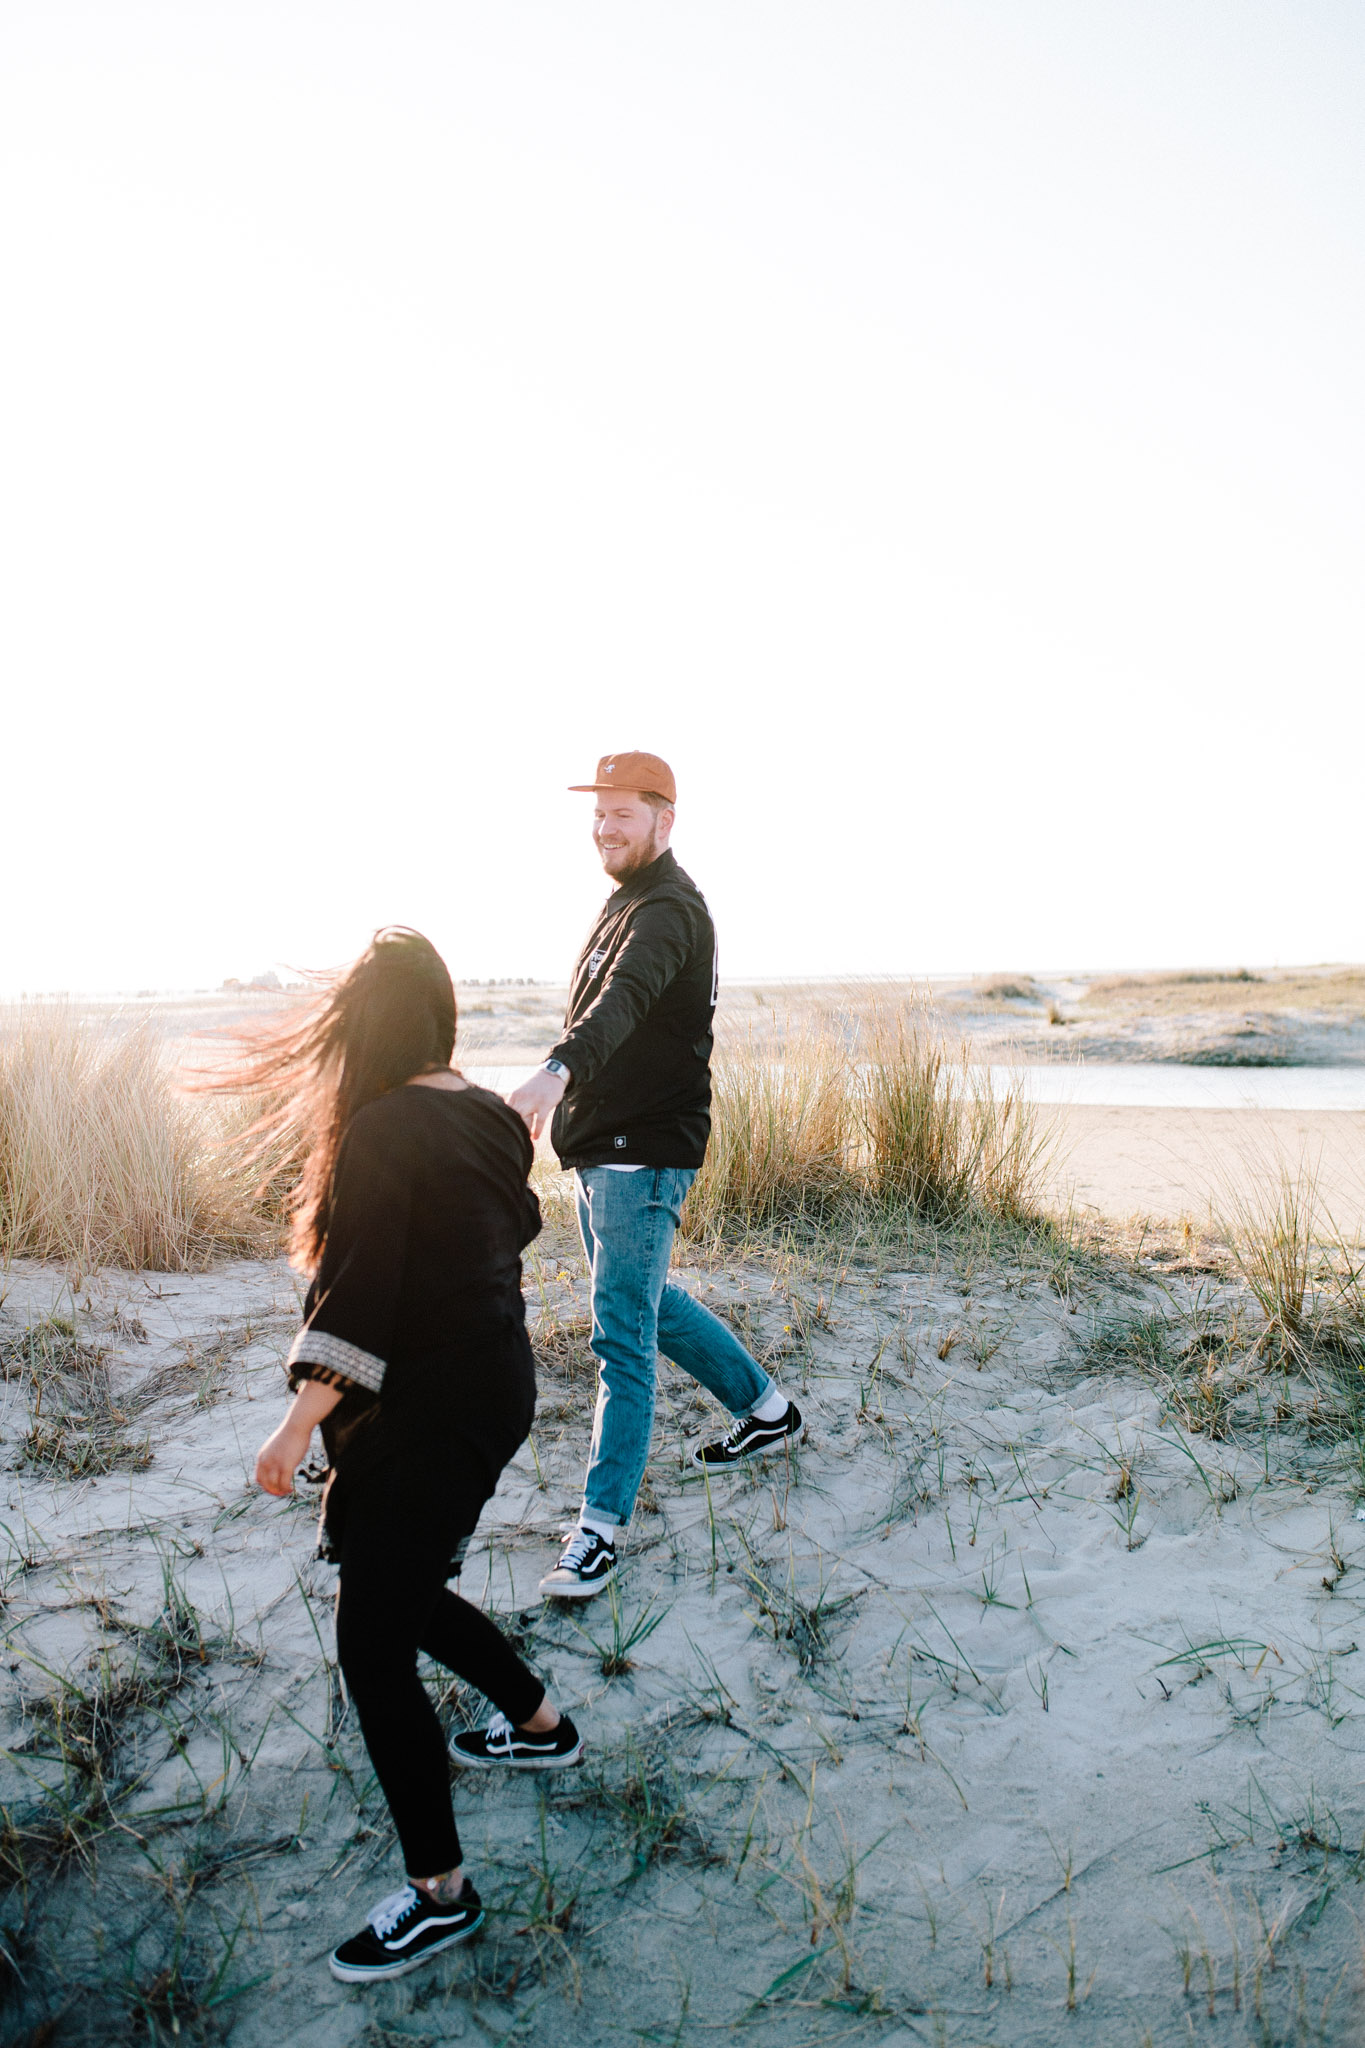 Sankt-Peter-Ording-Engagement-Pia-Anna-Christian-Wedding-Photography-KT-19.jpg